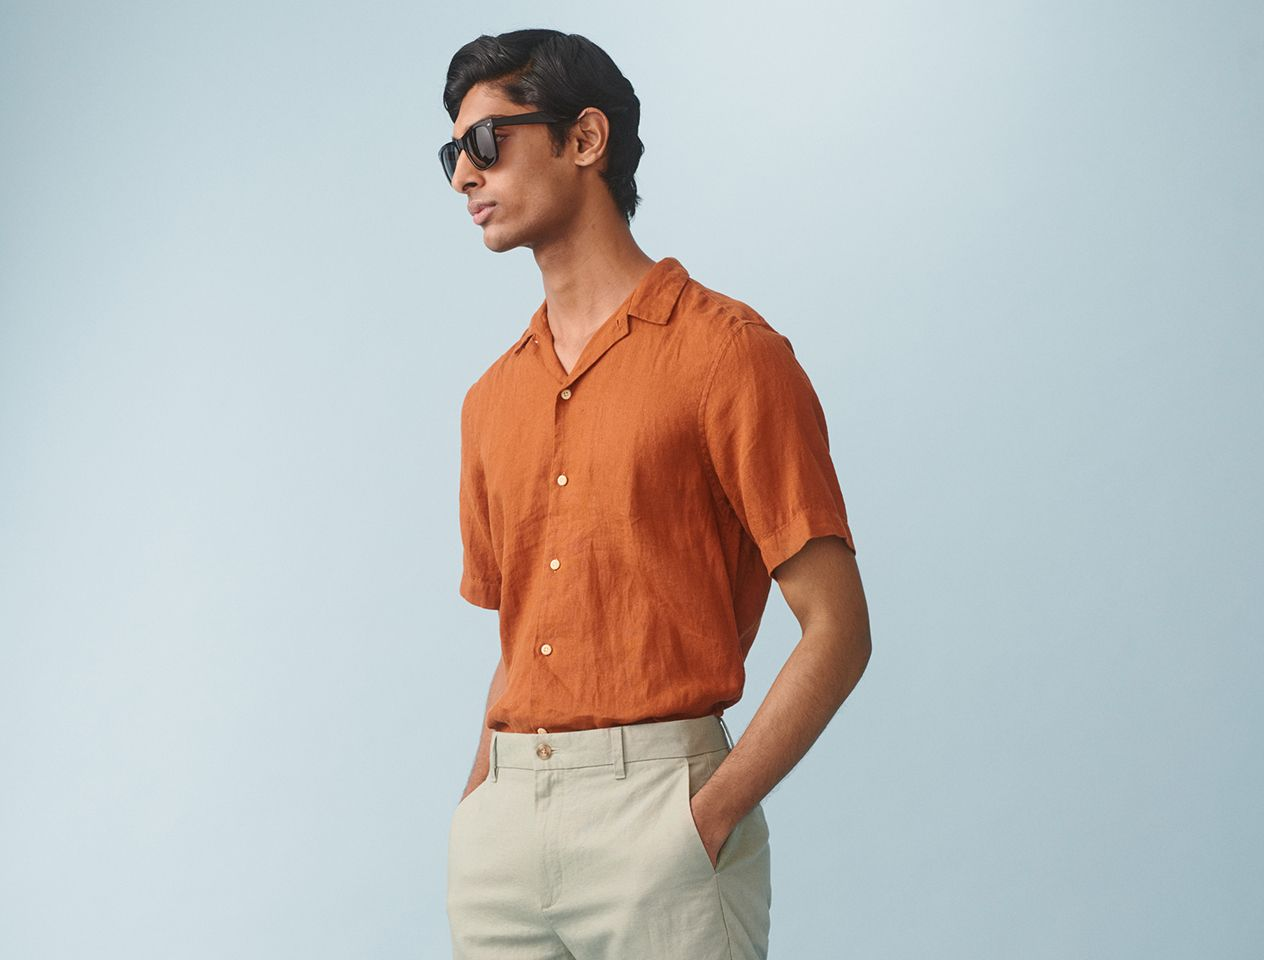 Summer wardrobe essentials for men